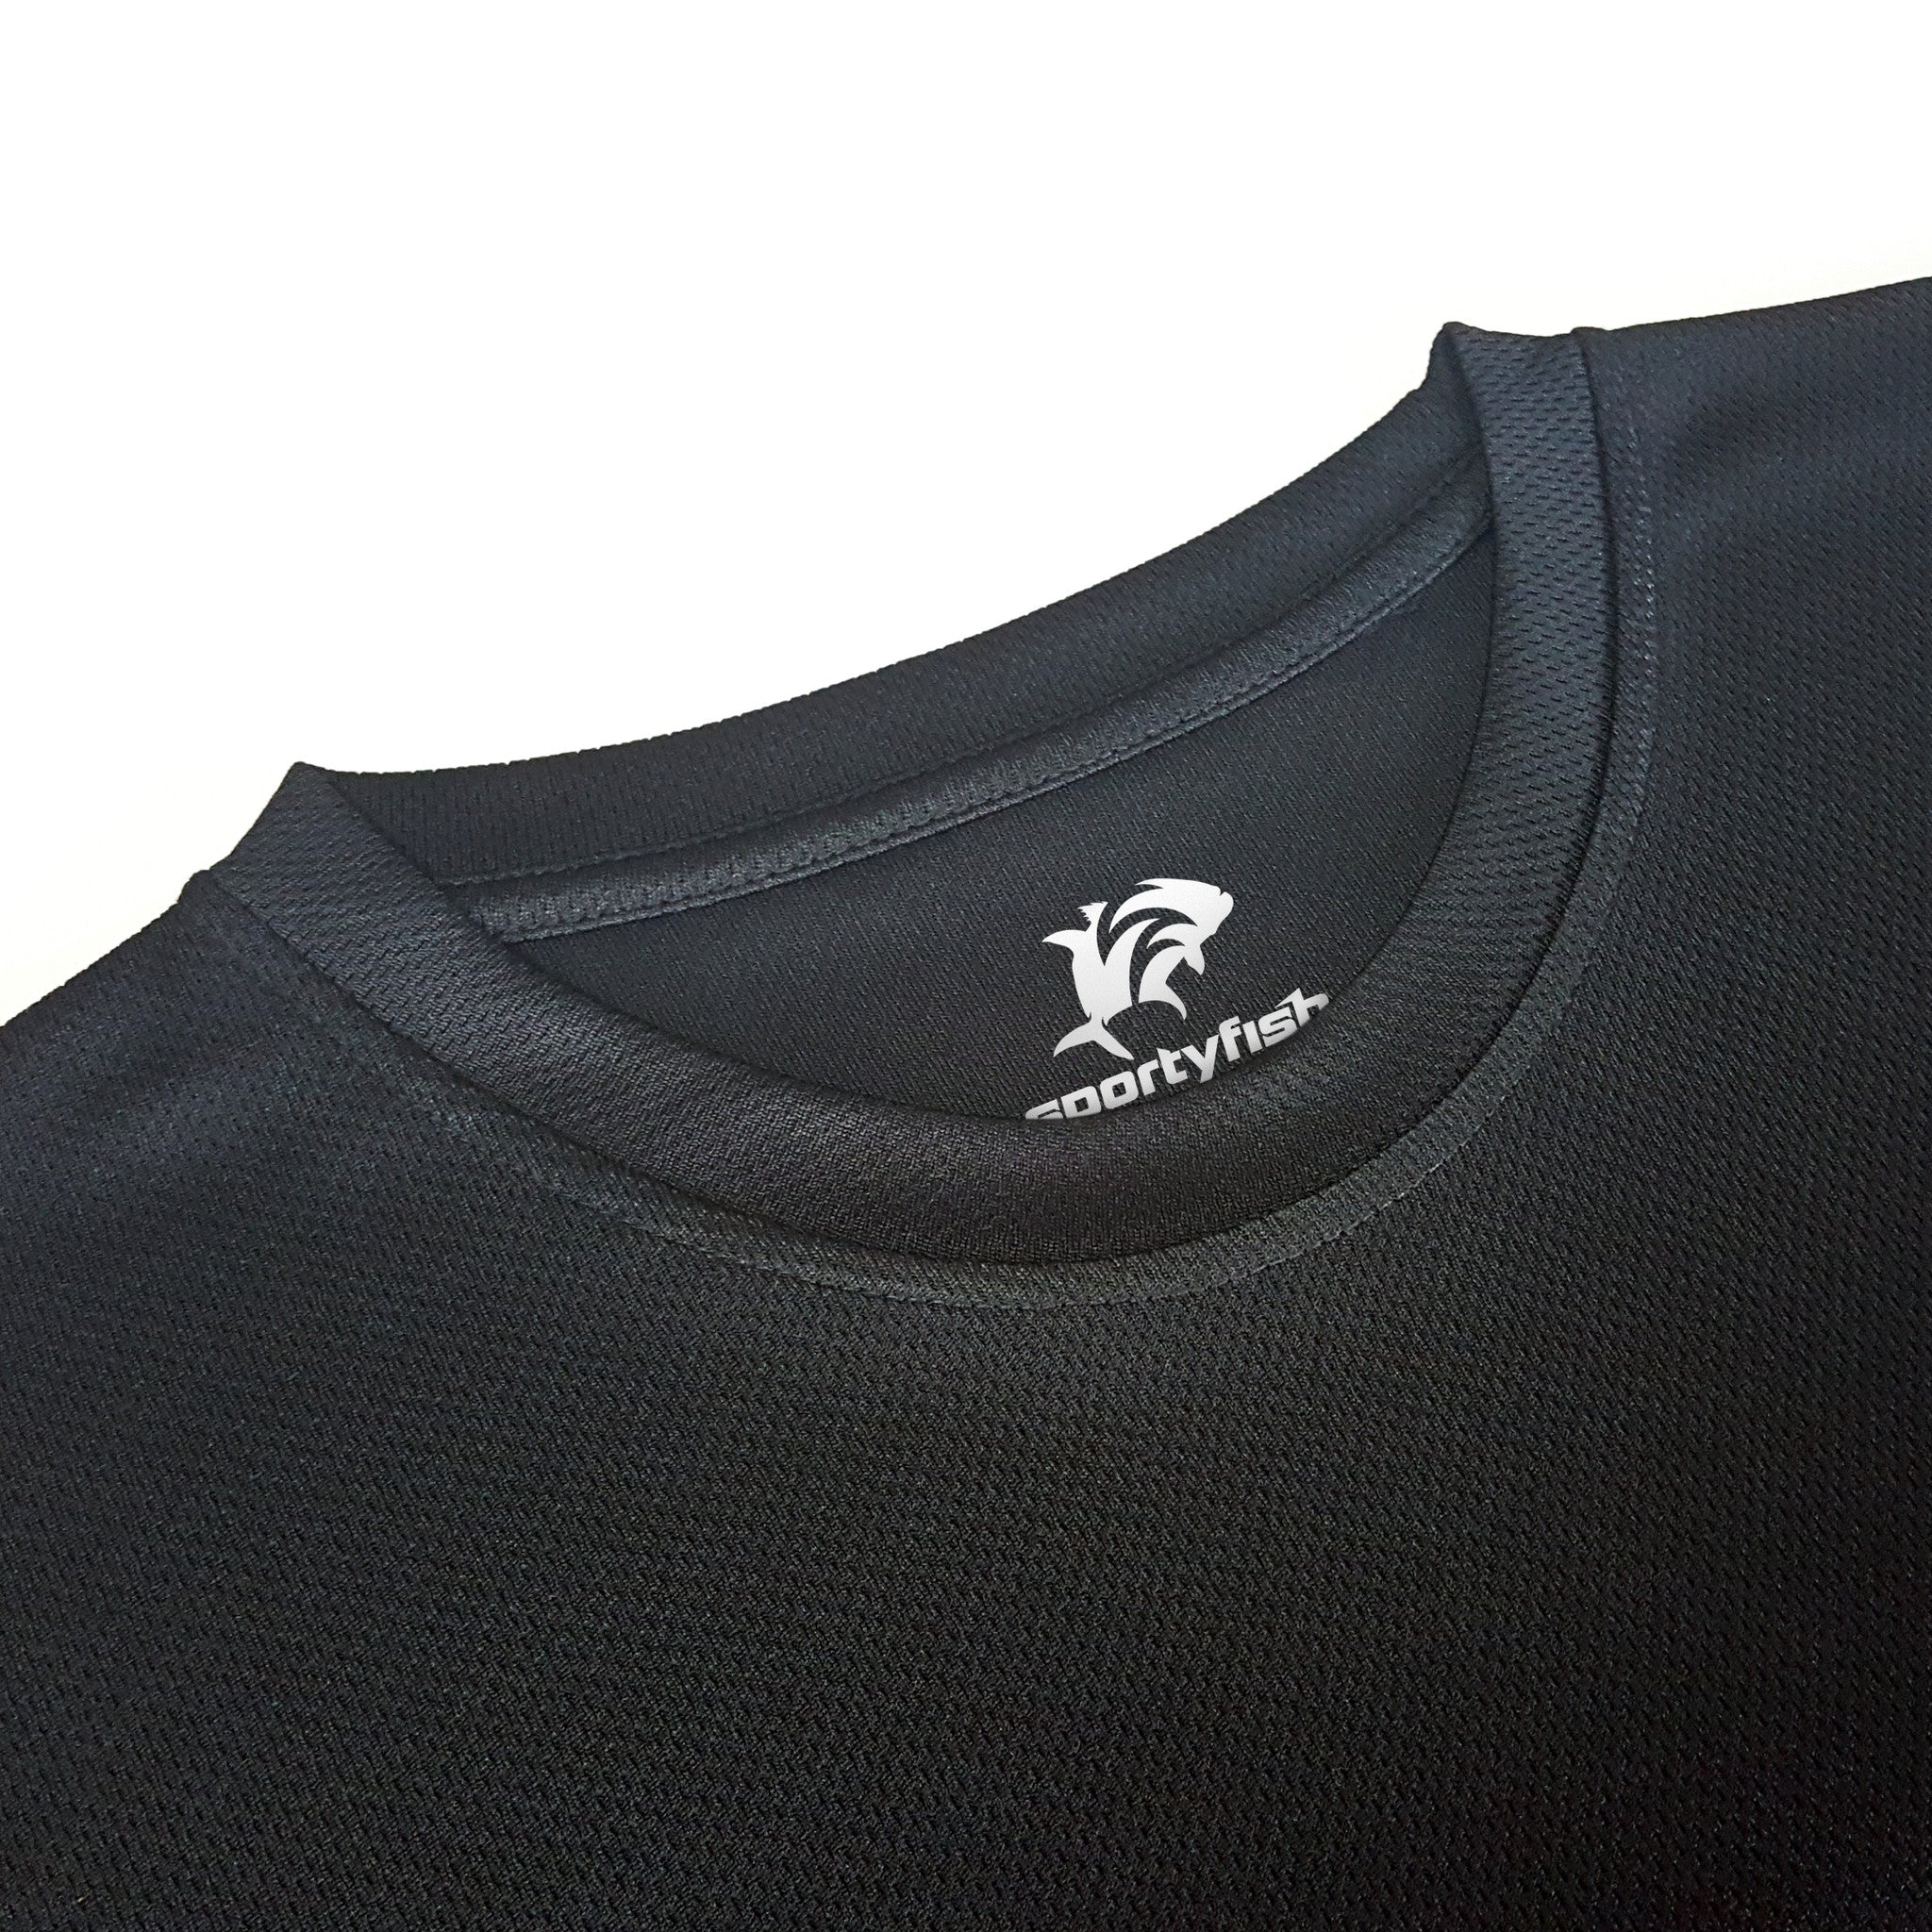 SportyFish Black Series black Long-sleeves t-shirt: Toman close-up view 3